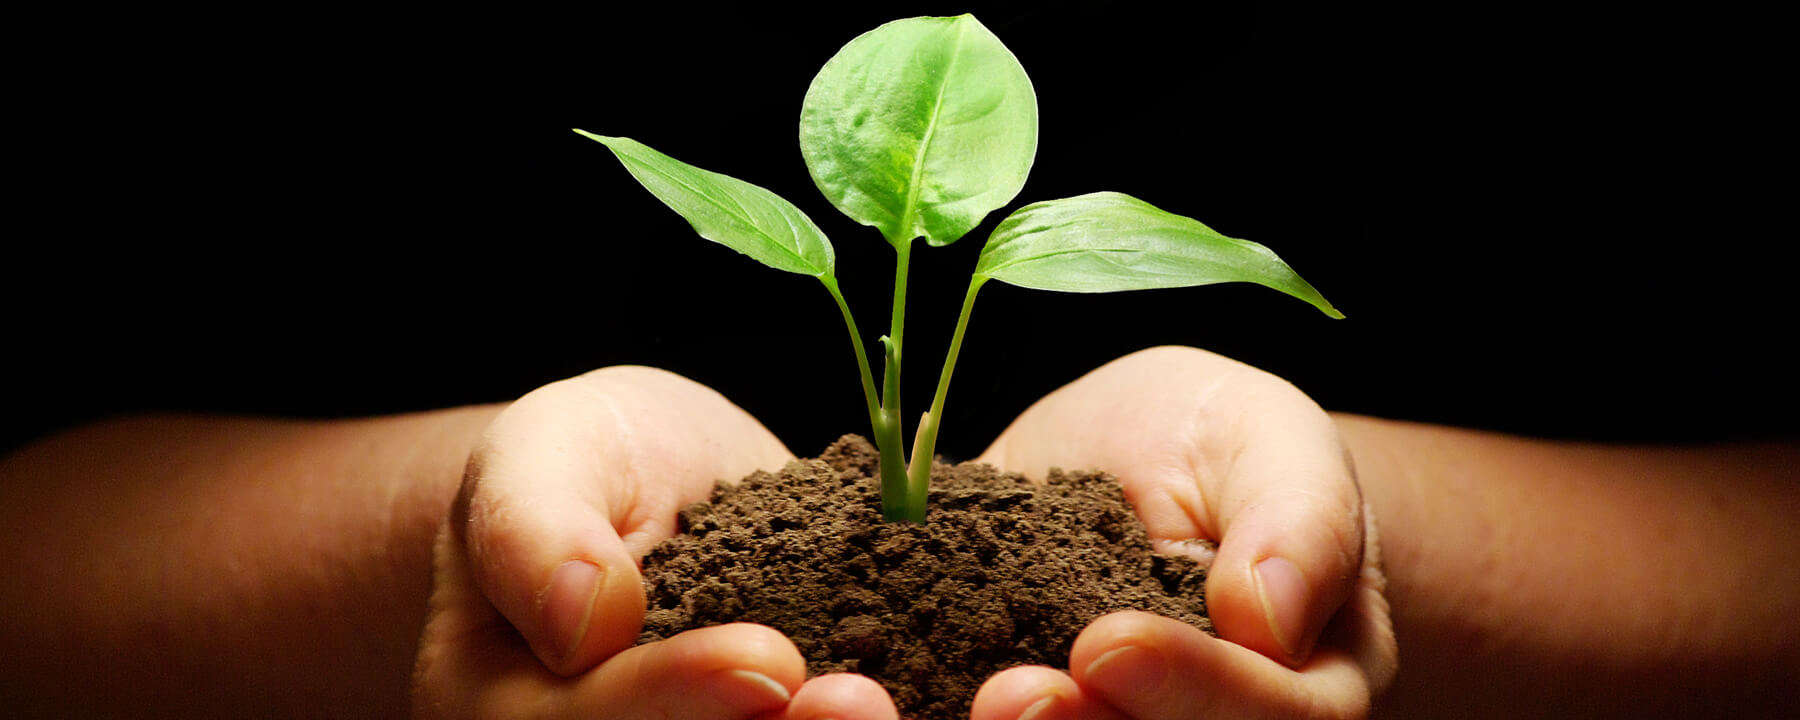 Plant nutrients and soil are available at Grass Root Grower LLC.